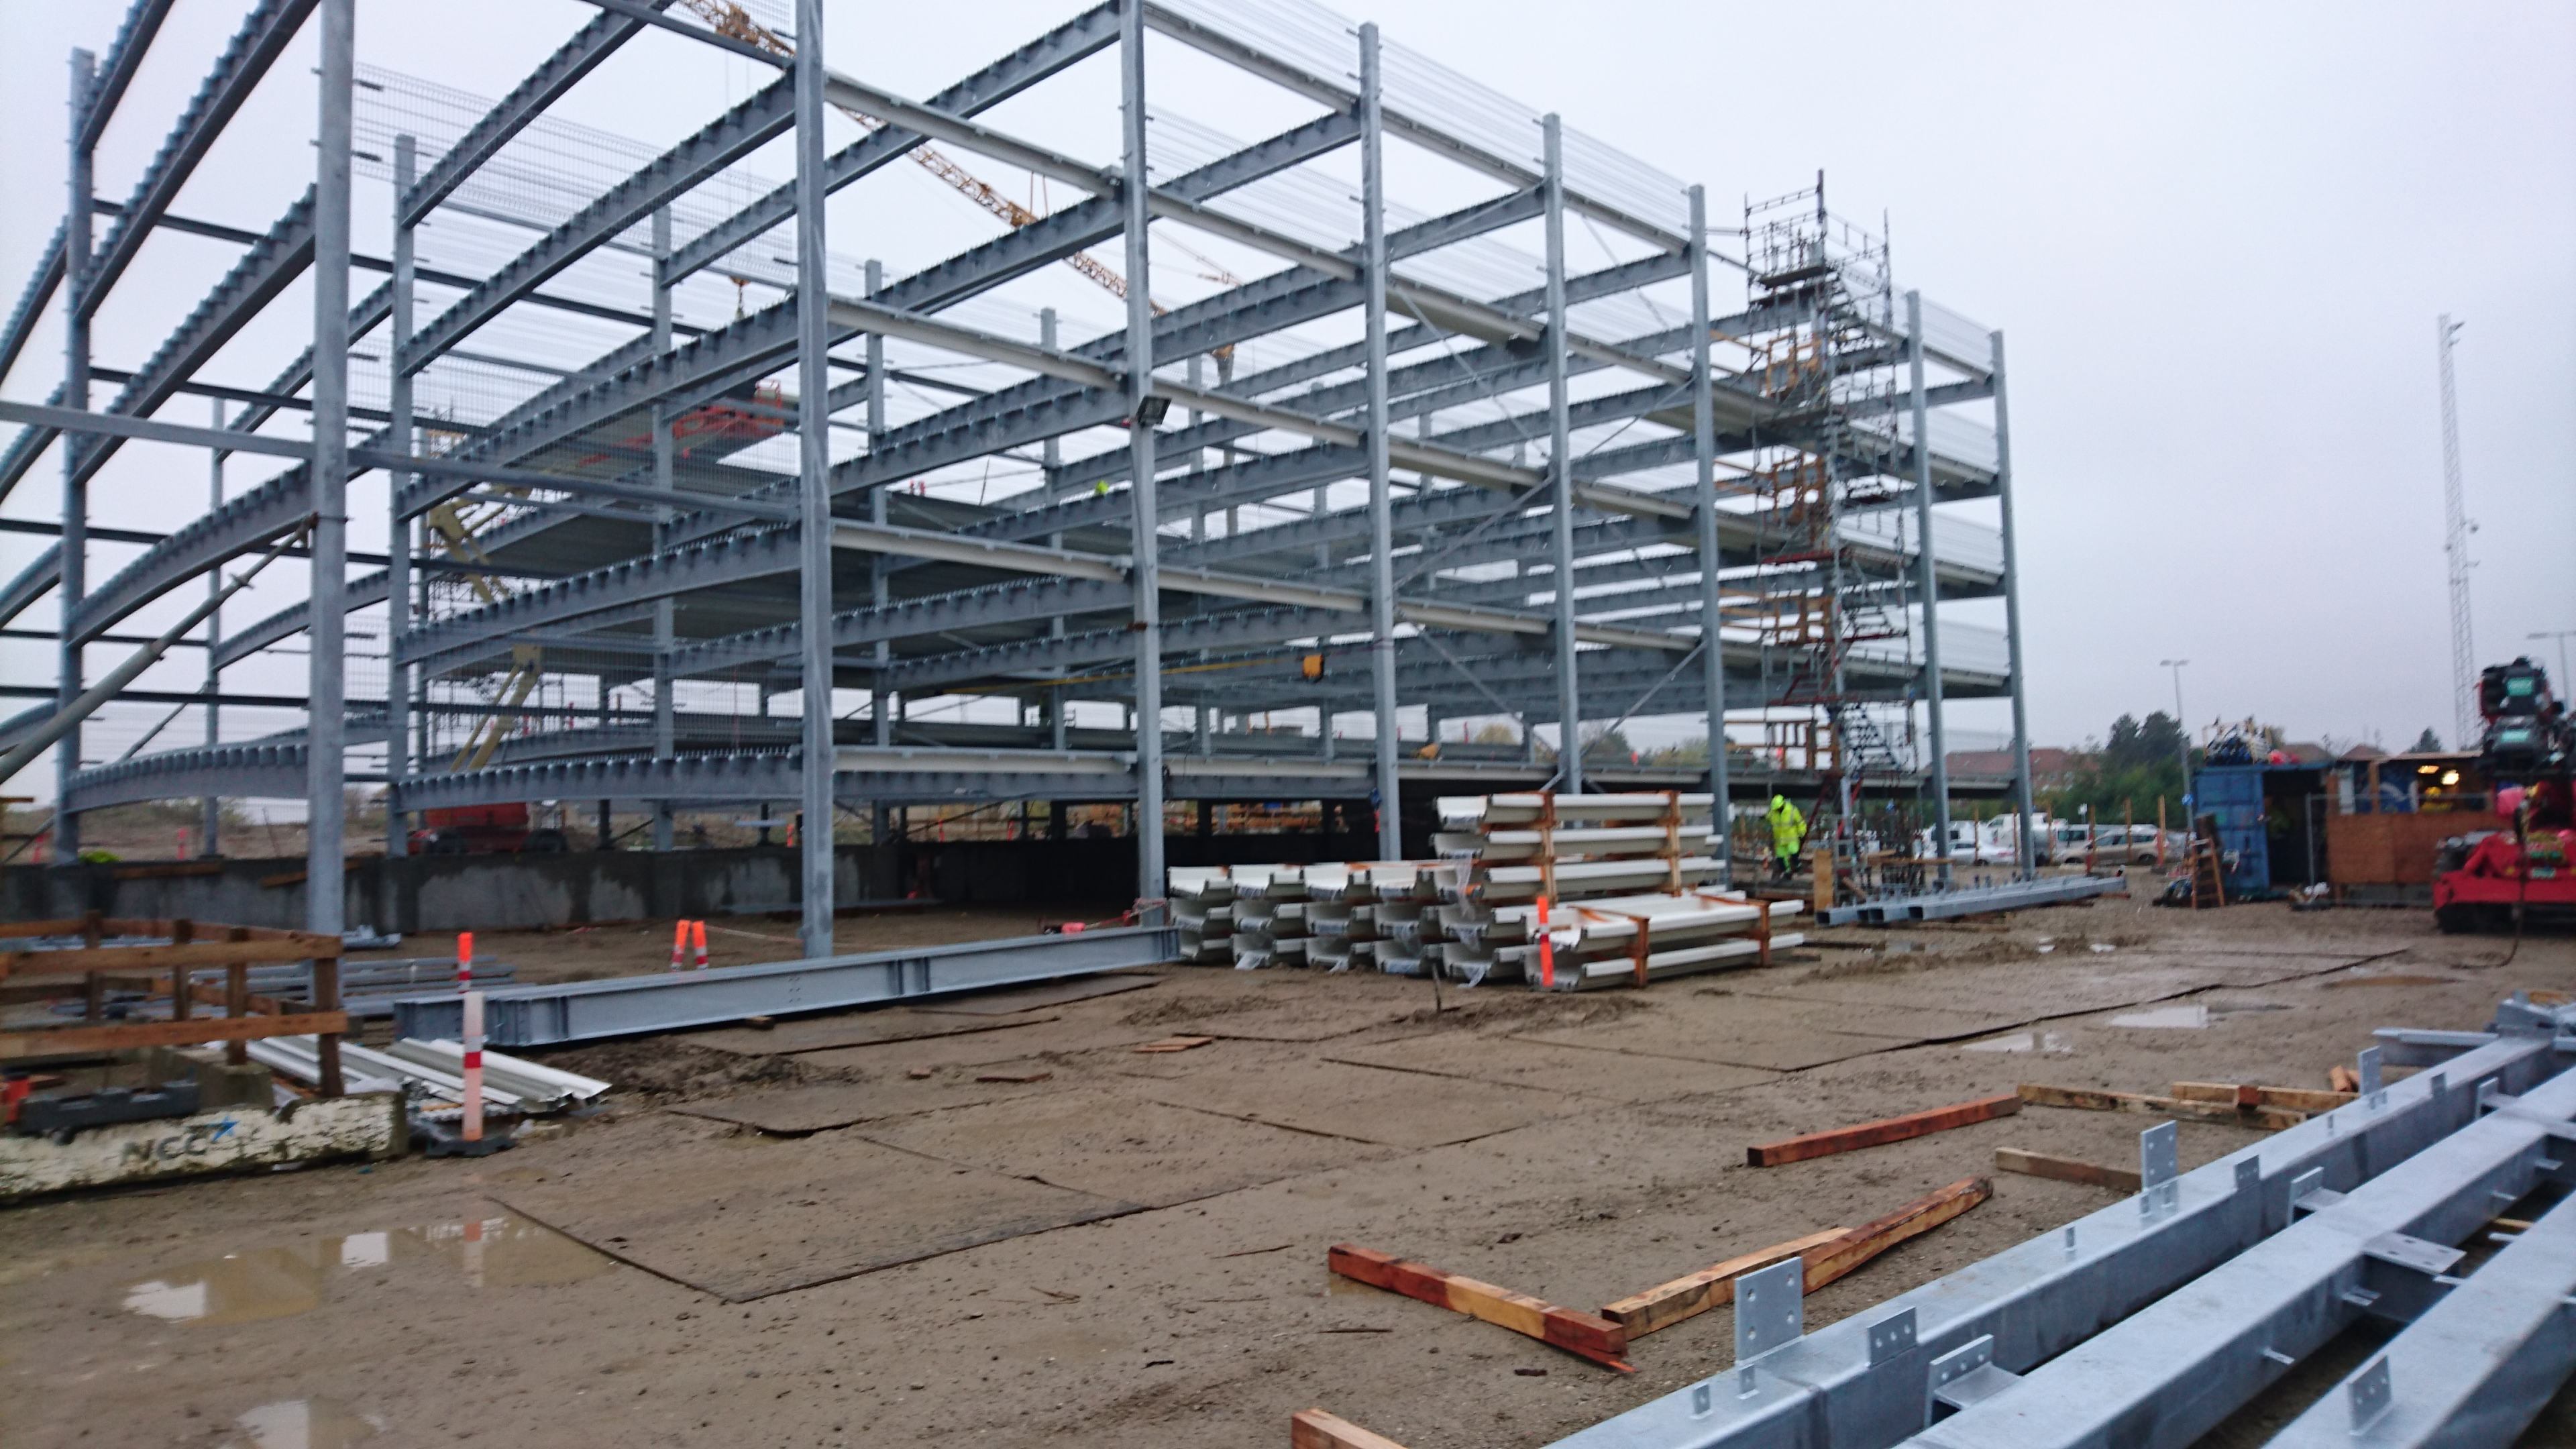 Construction site of the parking house - the rough steel framework erected